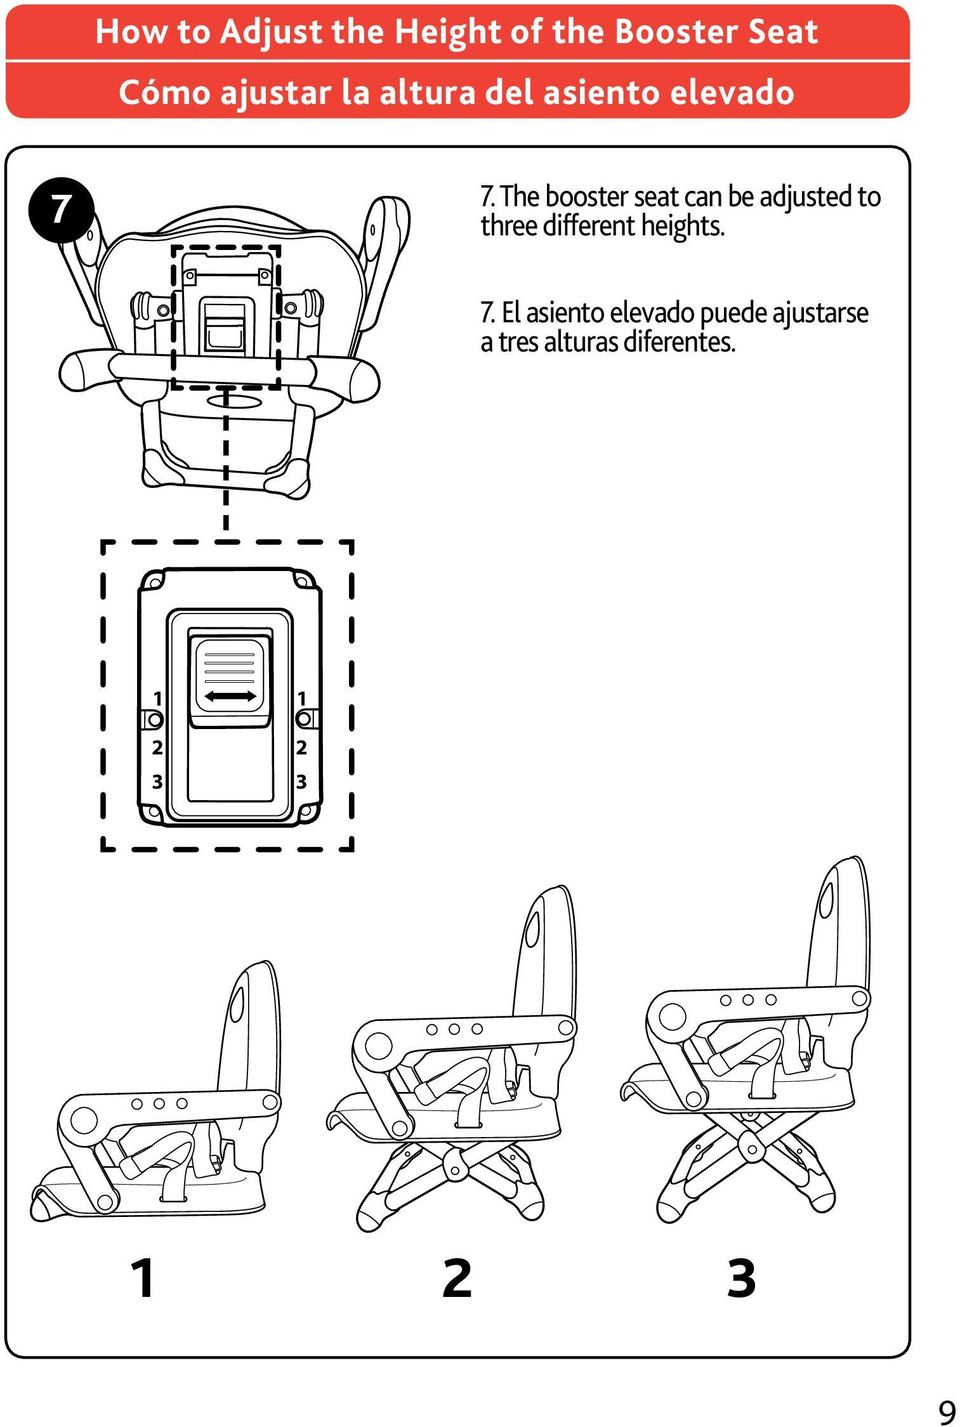 The booster seat can be adjusted to three different heights. 7.